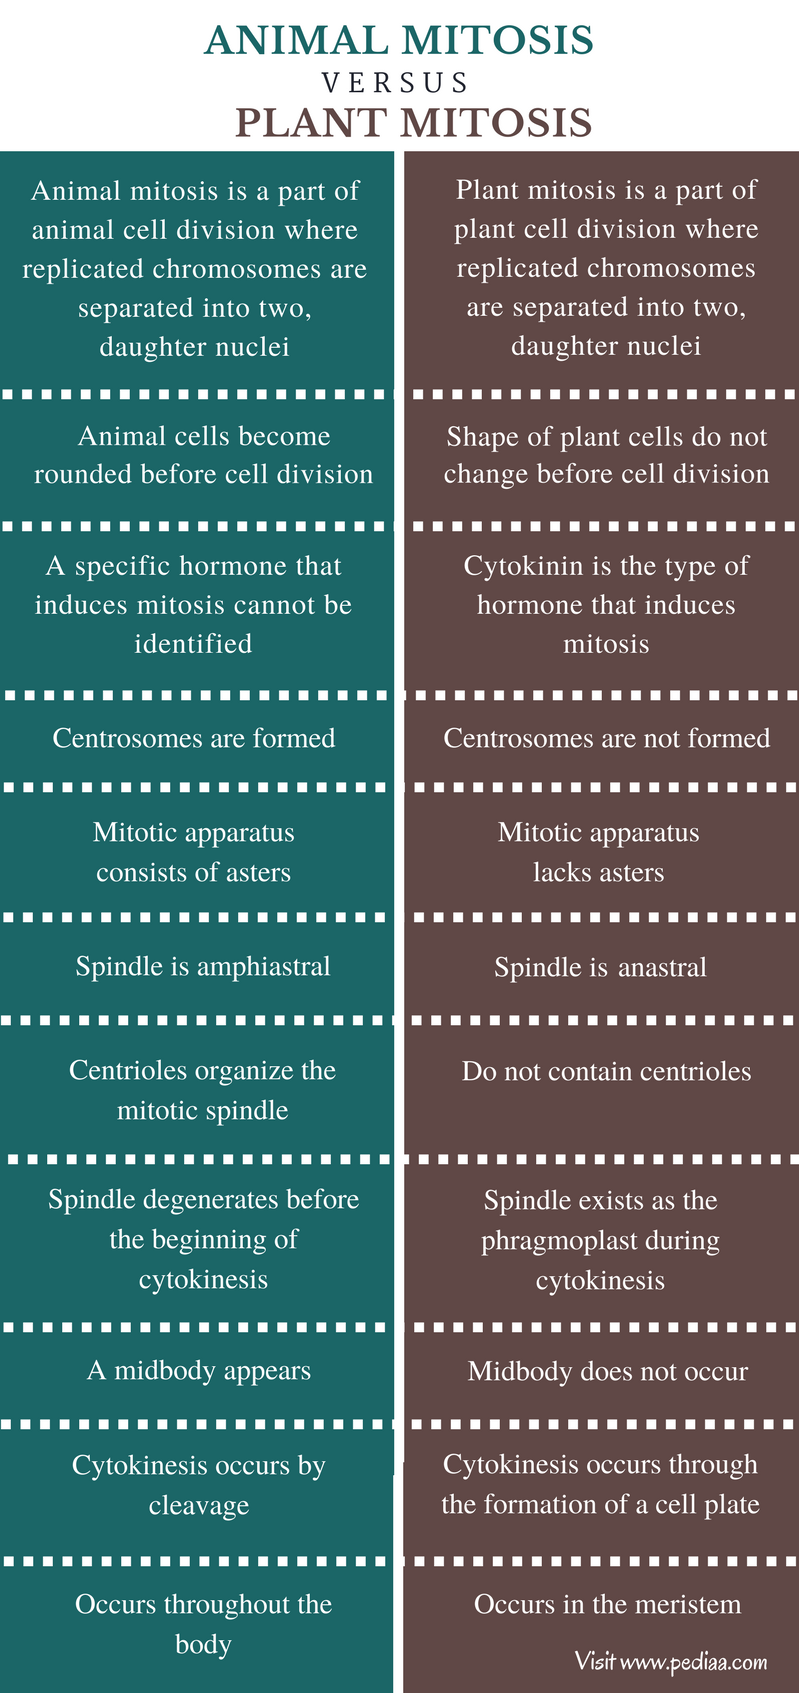 Difference Between Animal and Plant Mitosis - Comparison Summary